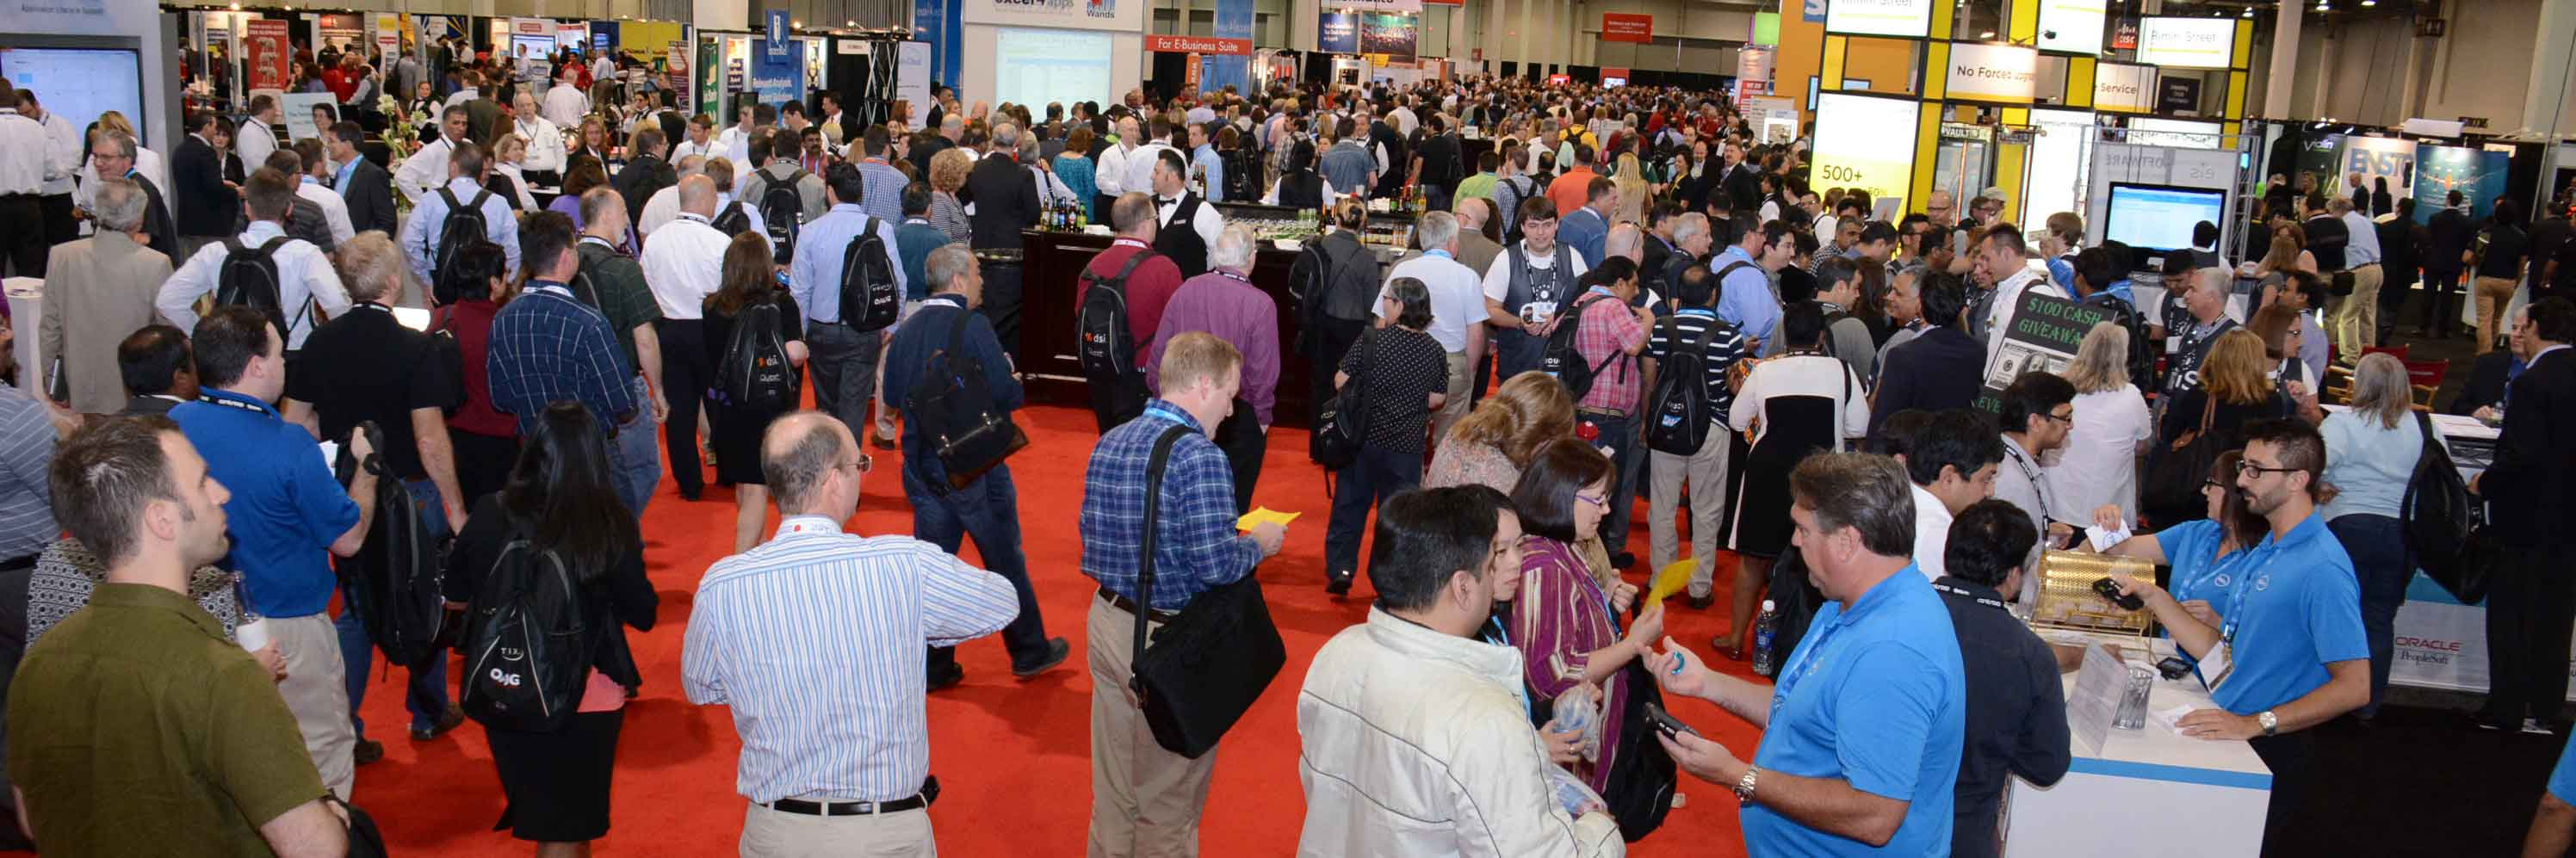 crowd at collaborate 15